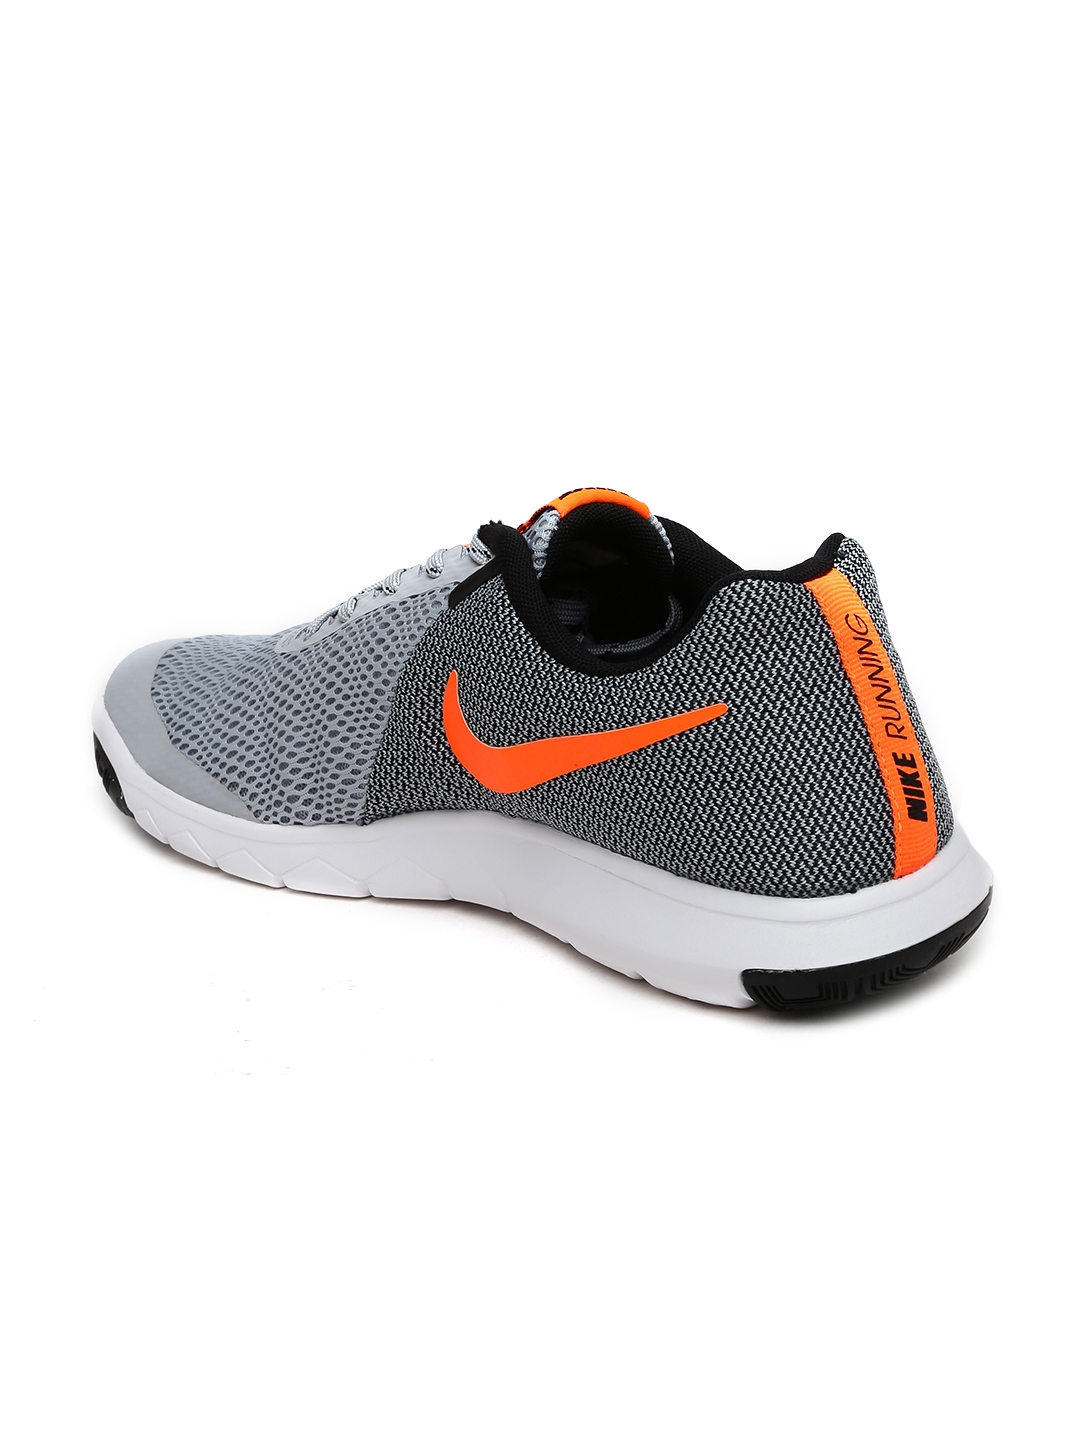 Buy Nike Men Grey Lex Experience RN 5 Running Shoes - Sports Shoes for Men  1547946  5bd91c07e